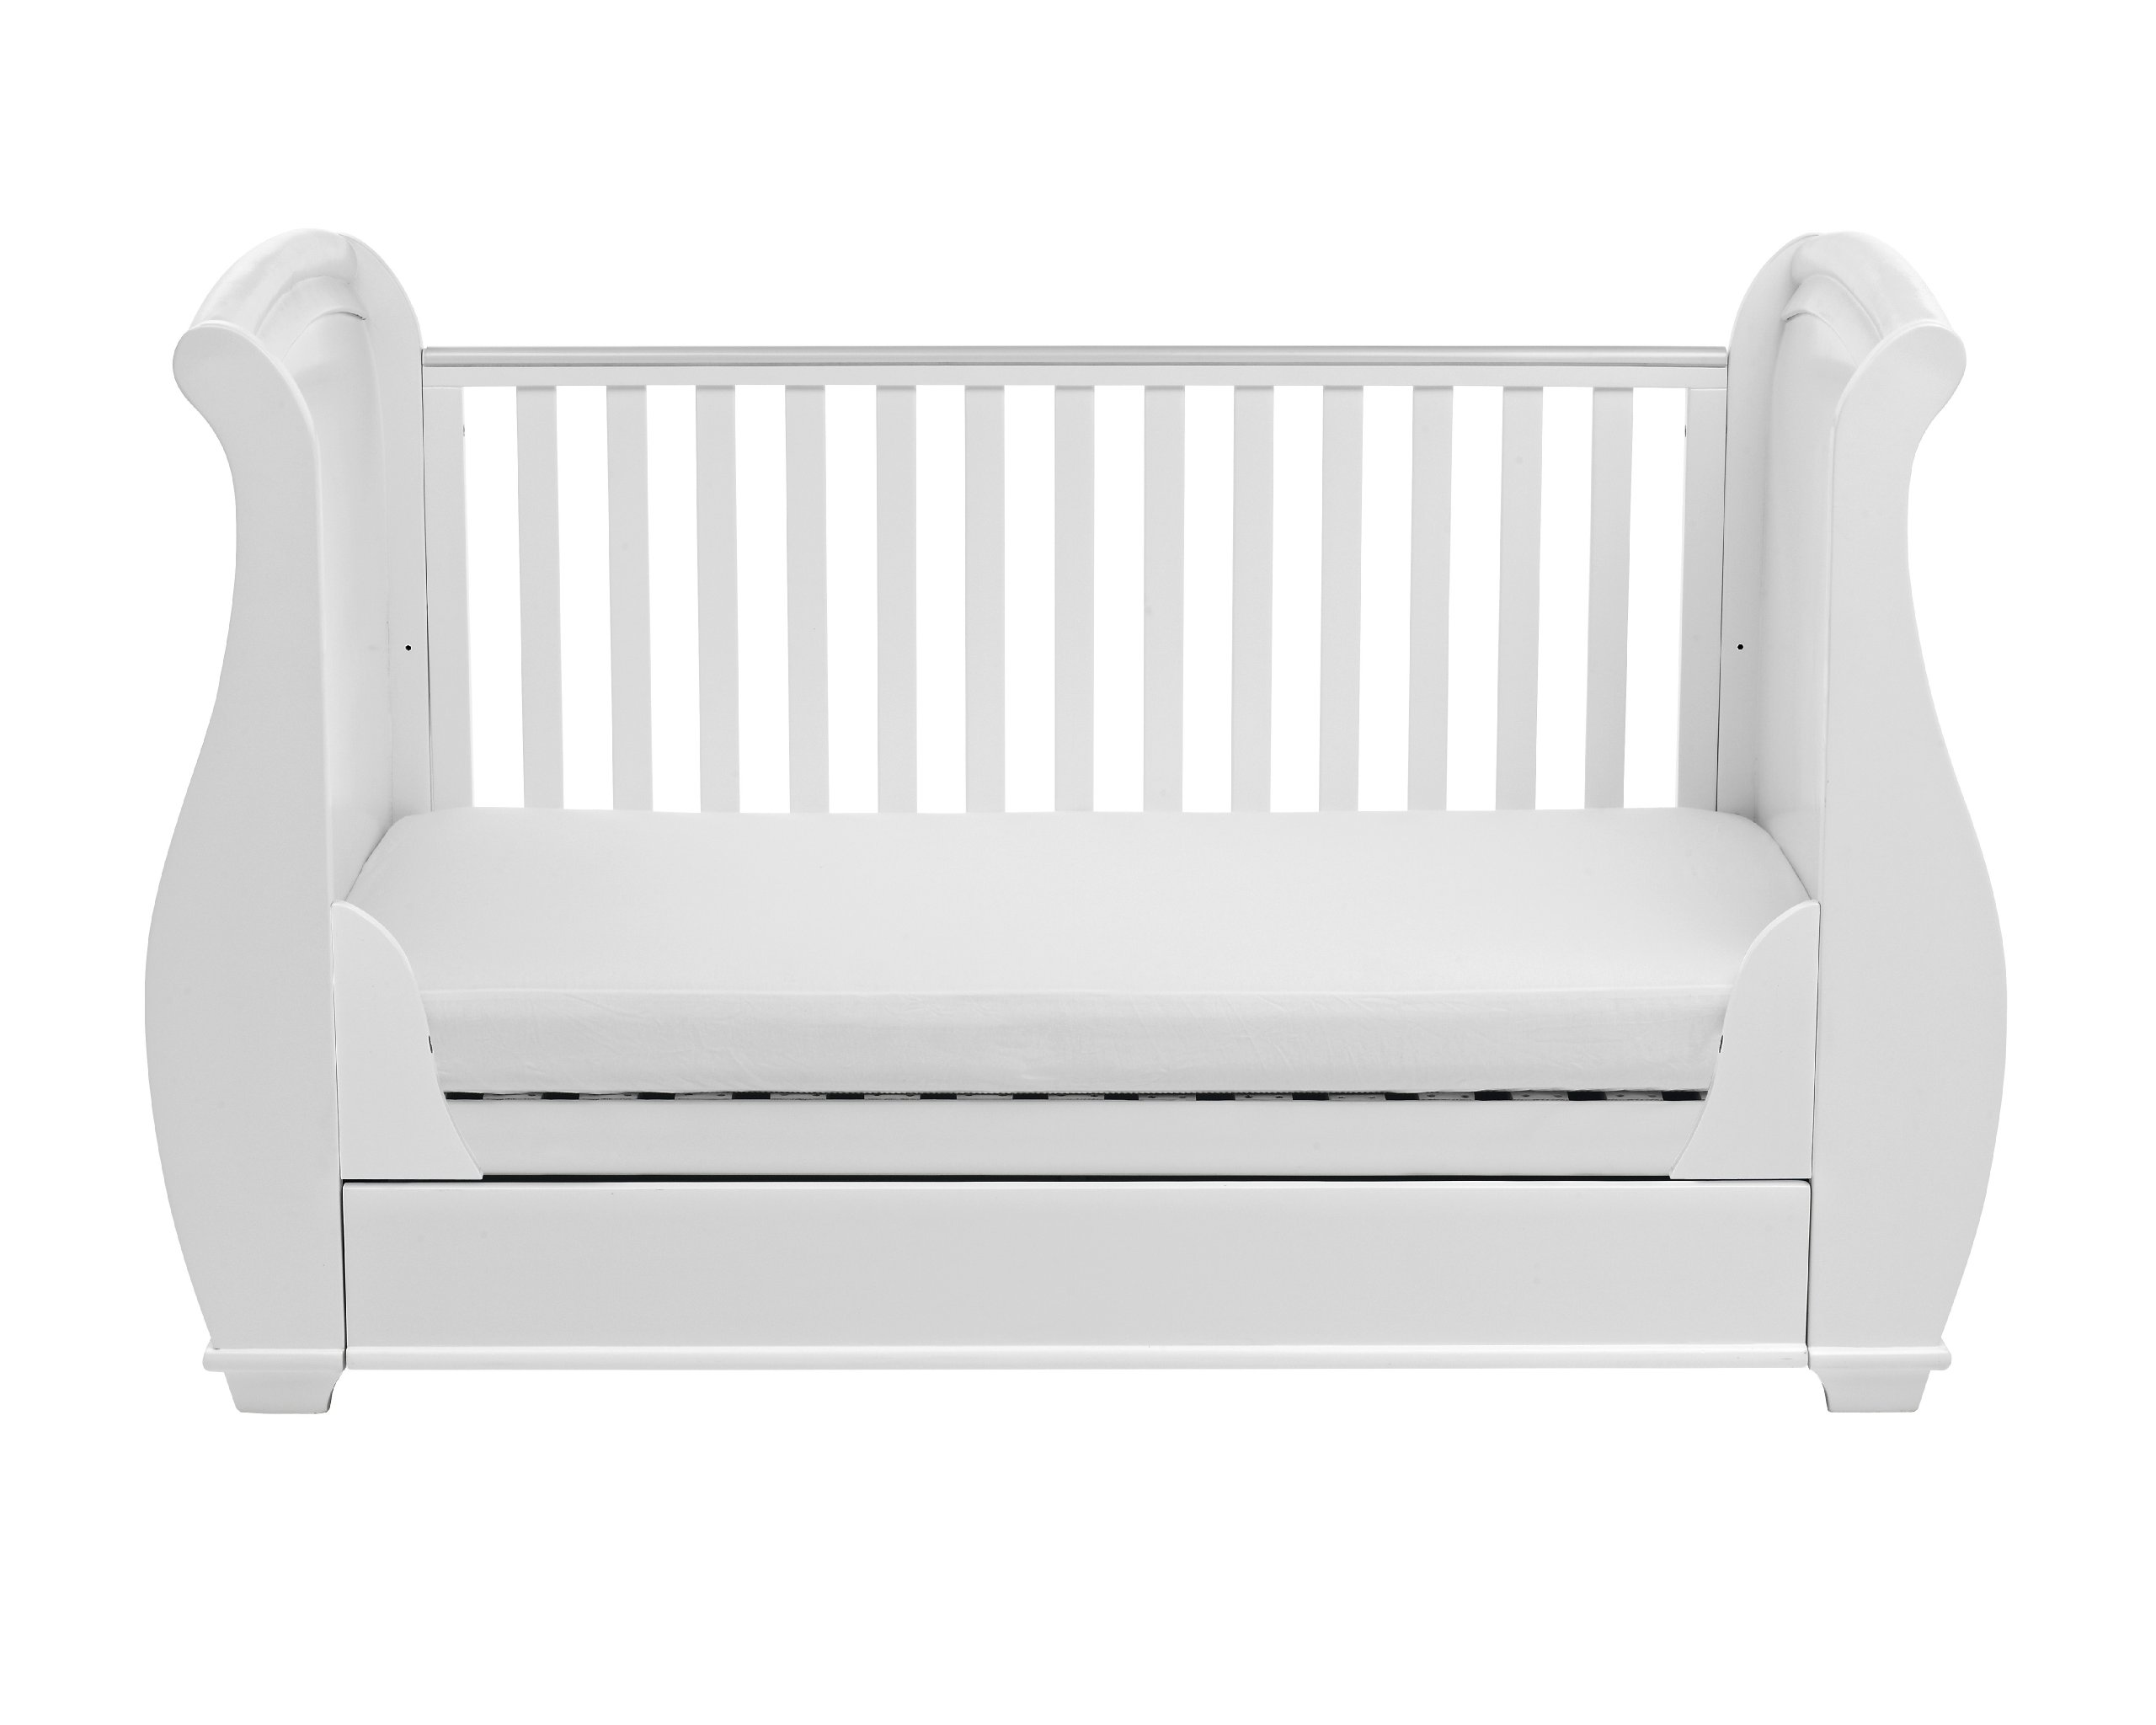 Babymore Bel Sleigh Cot Bed Dropside with Drawer (White)  Magnificent sleigh with appealing look of grandeur and solidity. Easily convert to junior bed/sofa/day bed, Meet British and European safety standards Single handed drop side mechanism allow easy access to your baby. 7